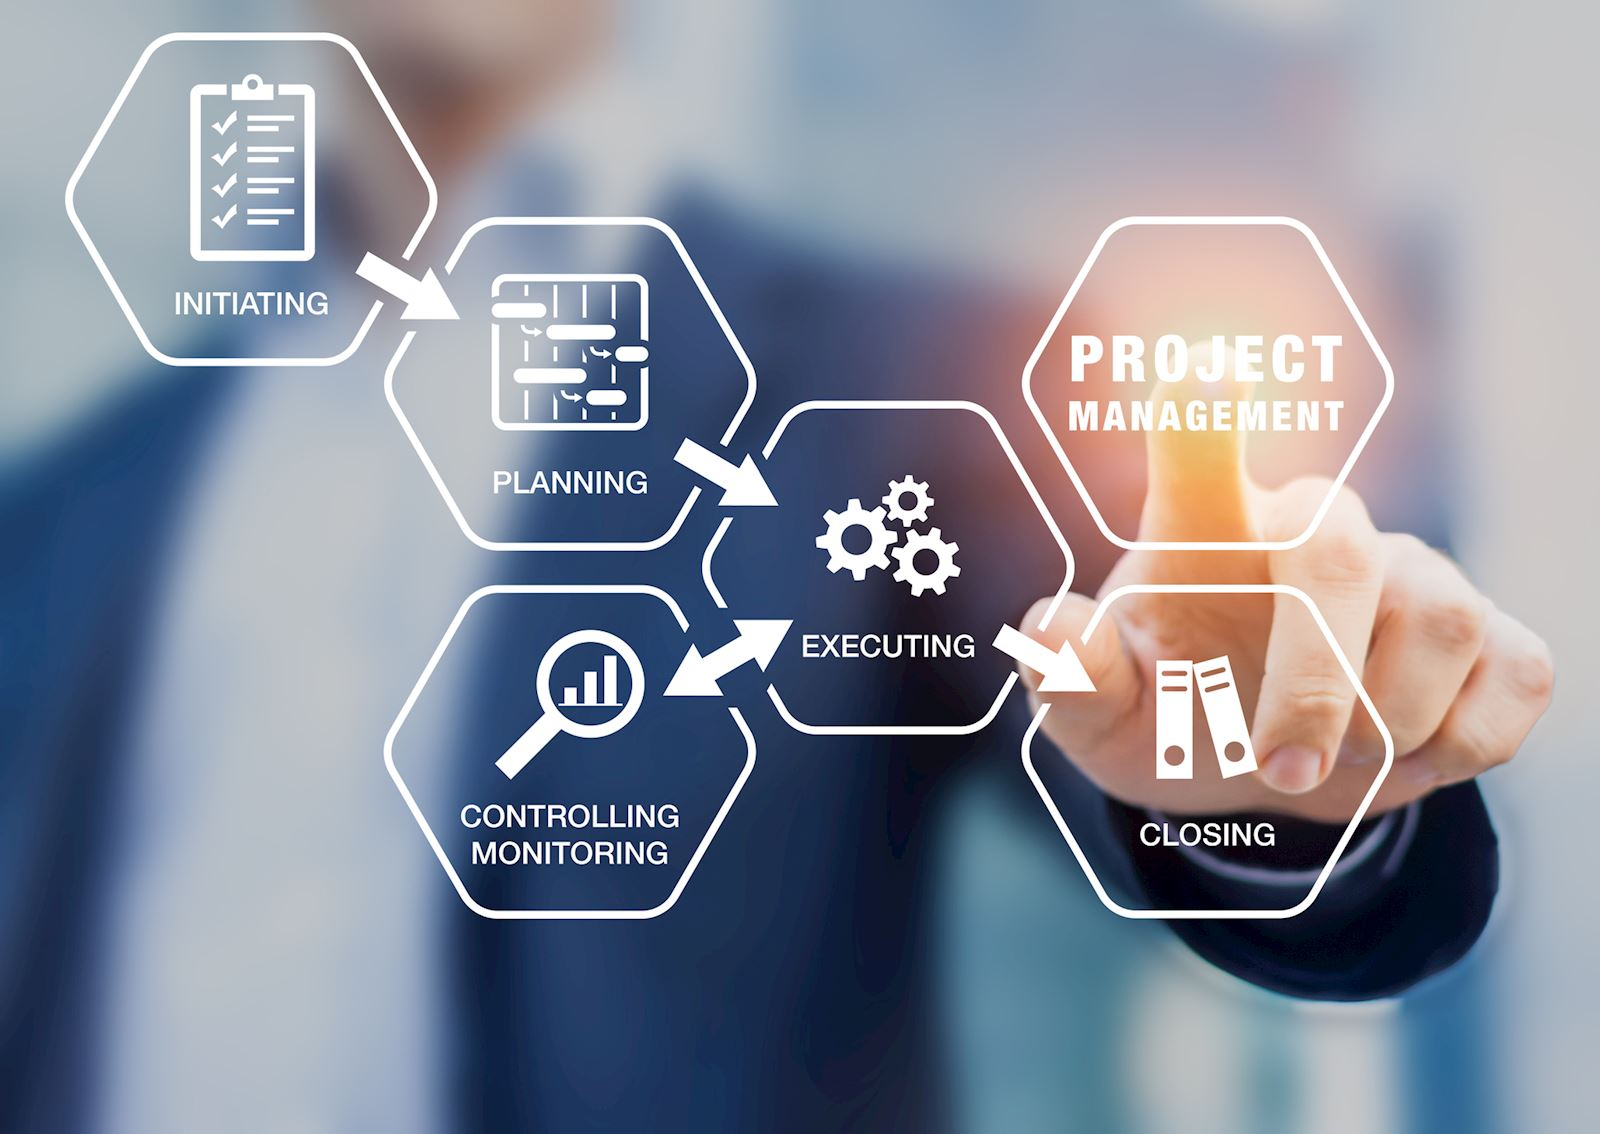 in the field of project management a project is generally divided into phases or stages while there are variations of this process with slightly different